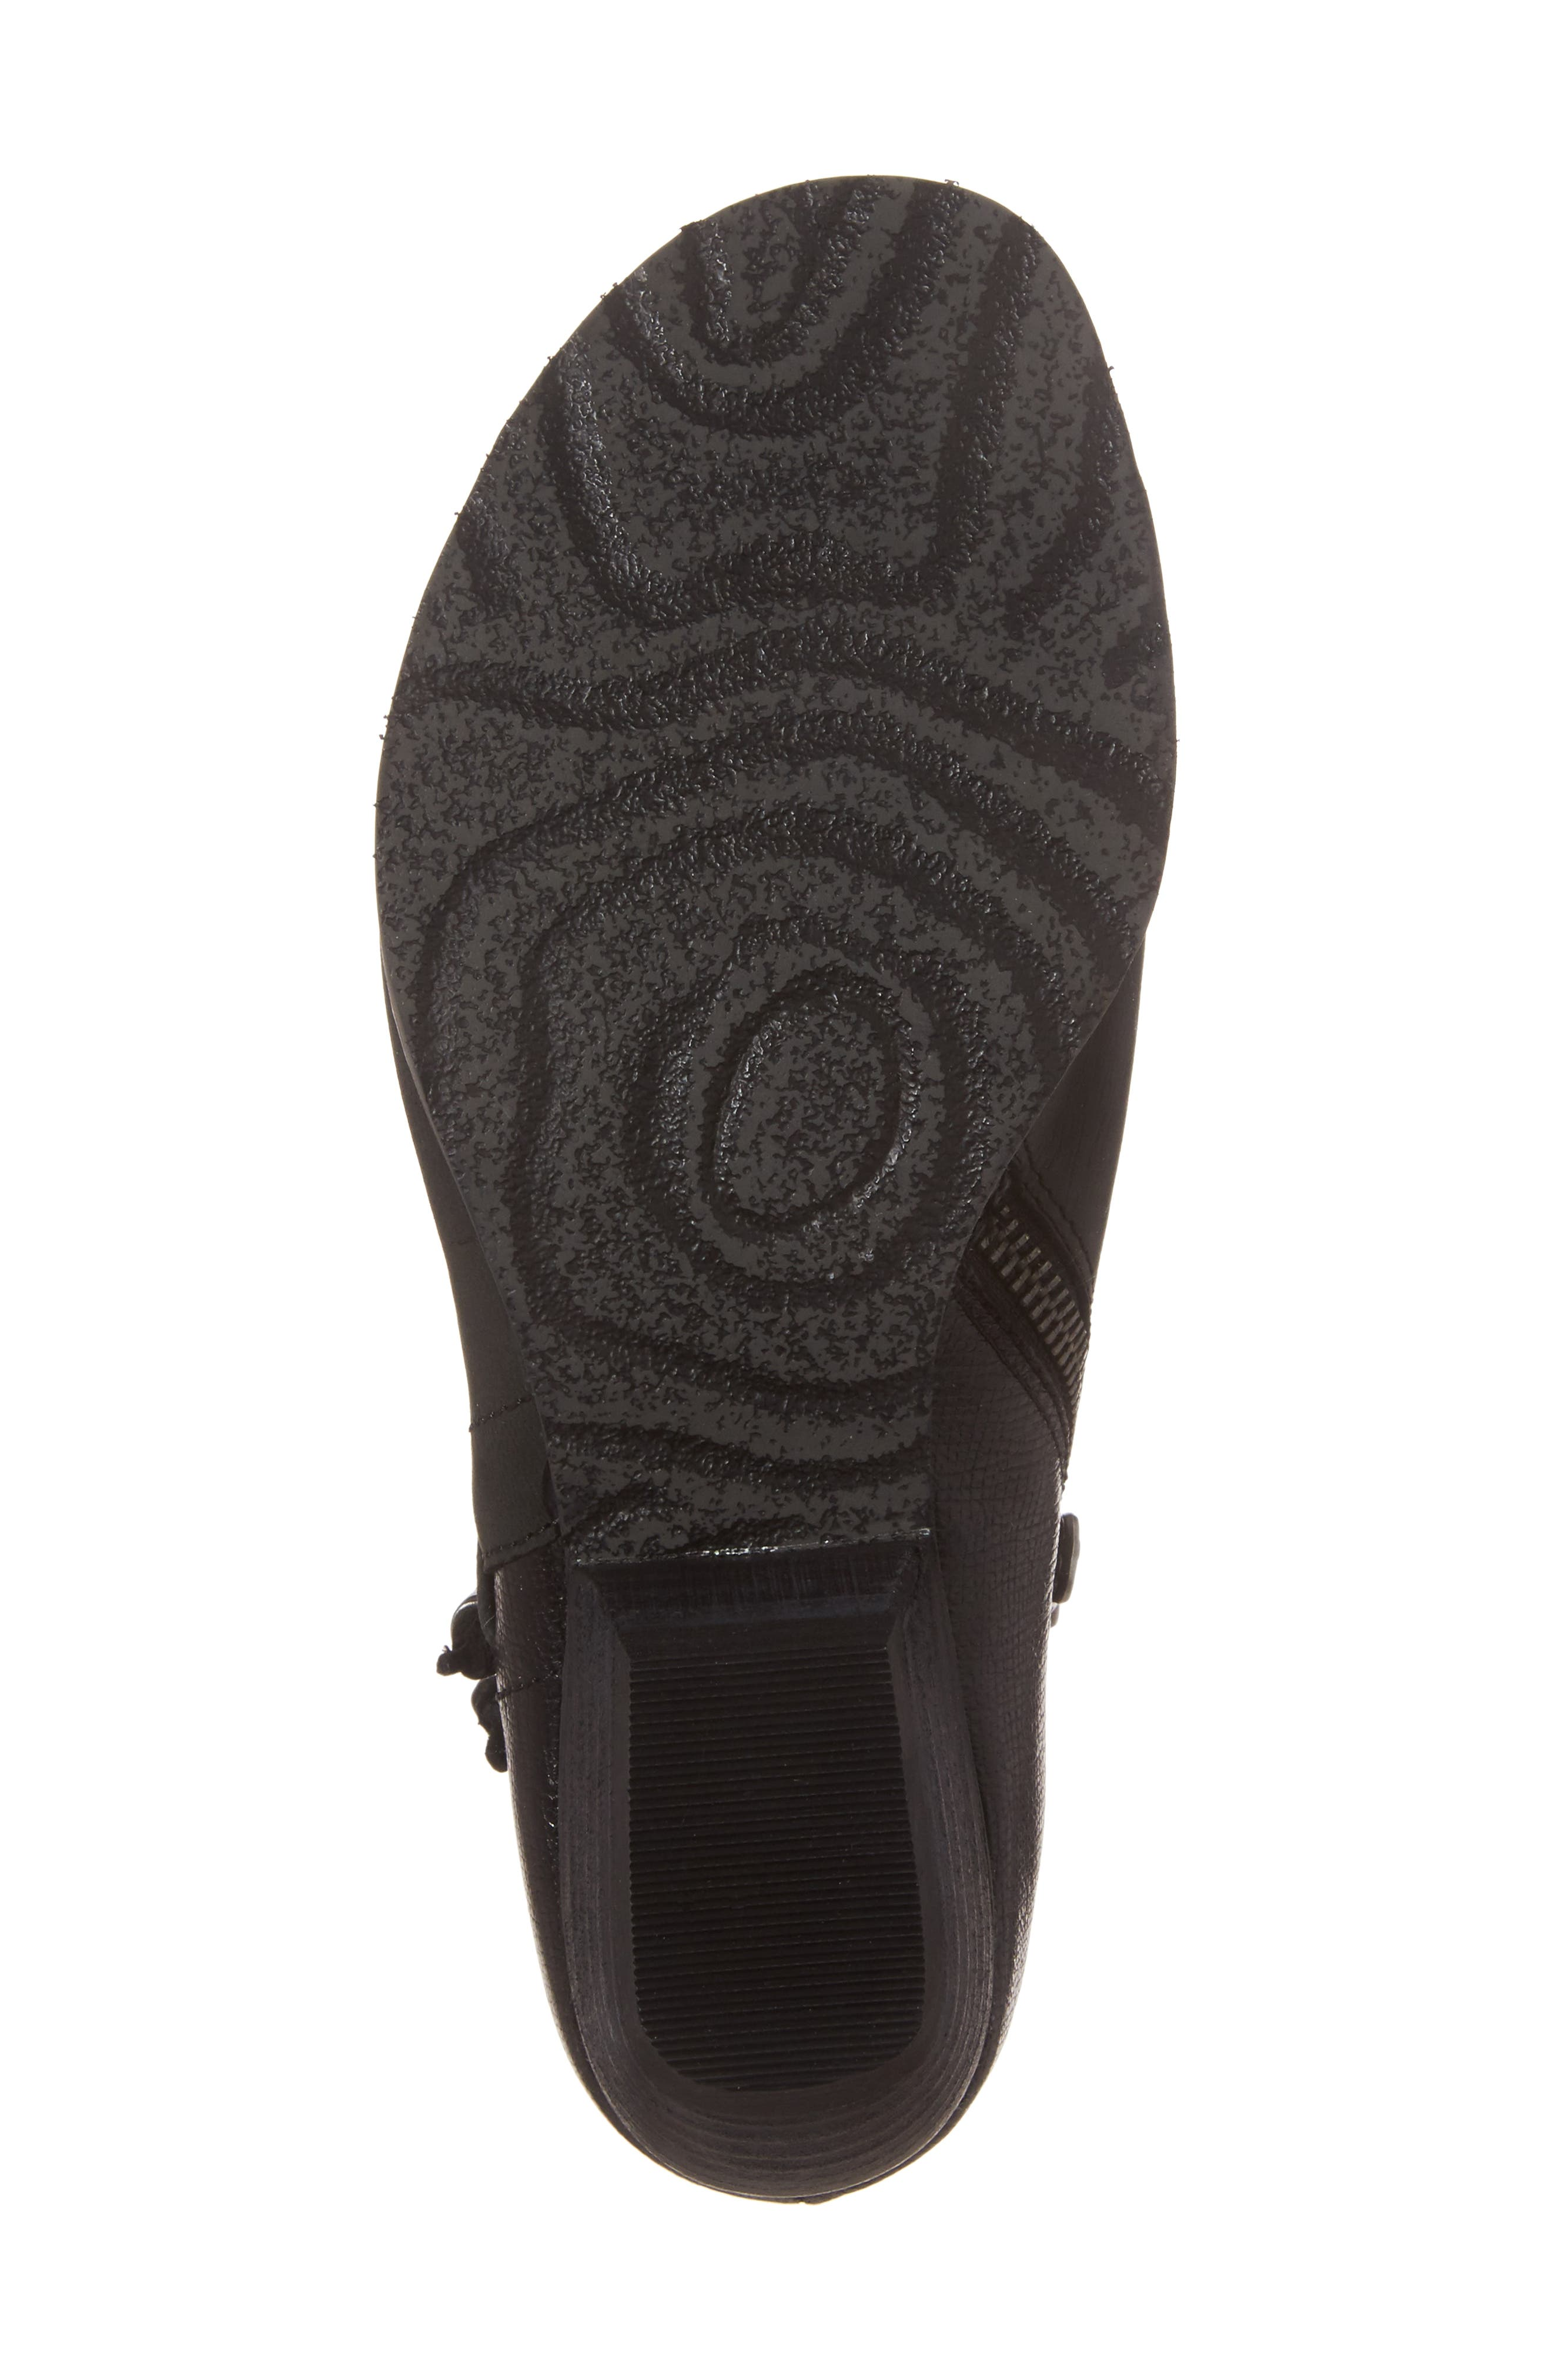 Truckage Open Toe Bootie,                             Alternate thumbnail 6, color,                             Black Leather